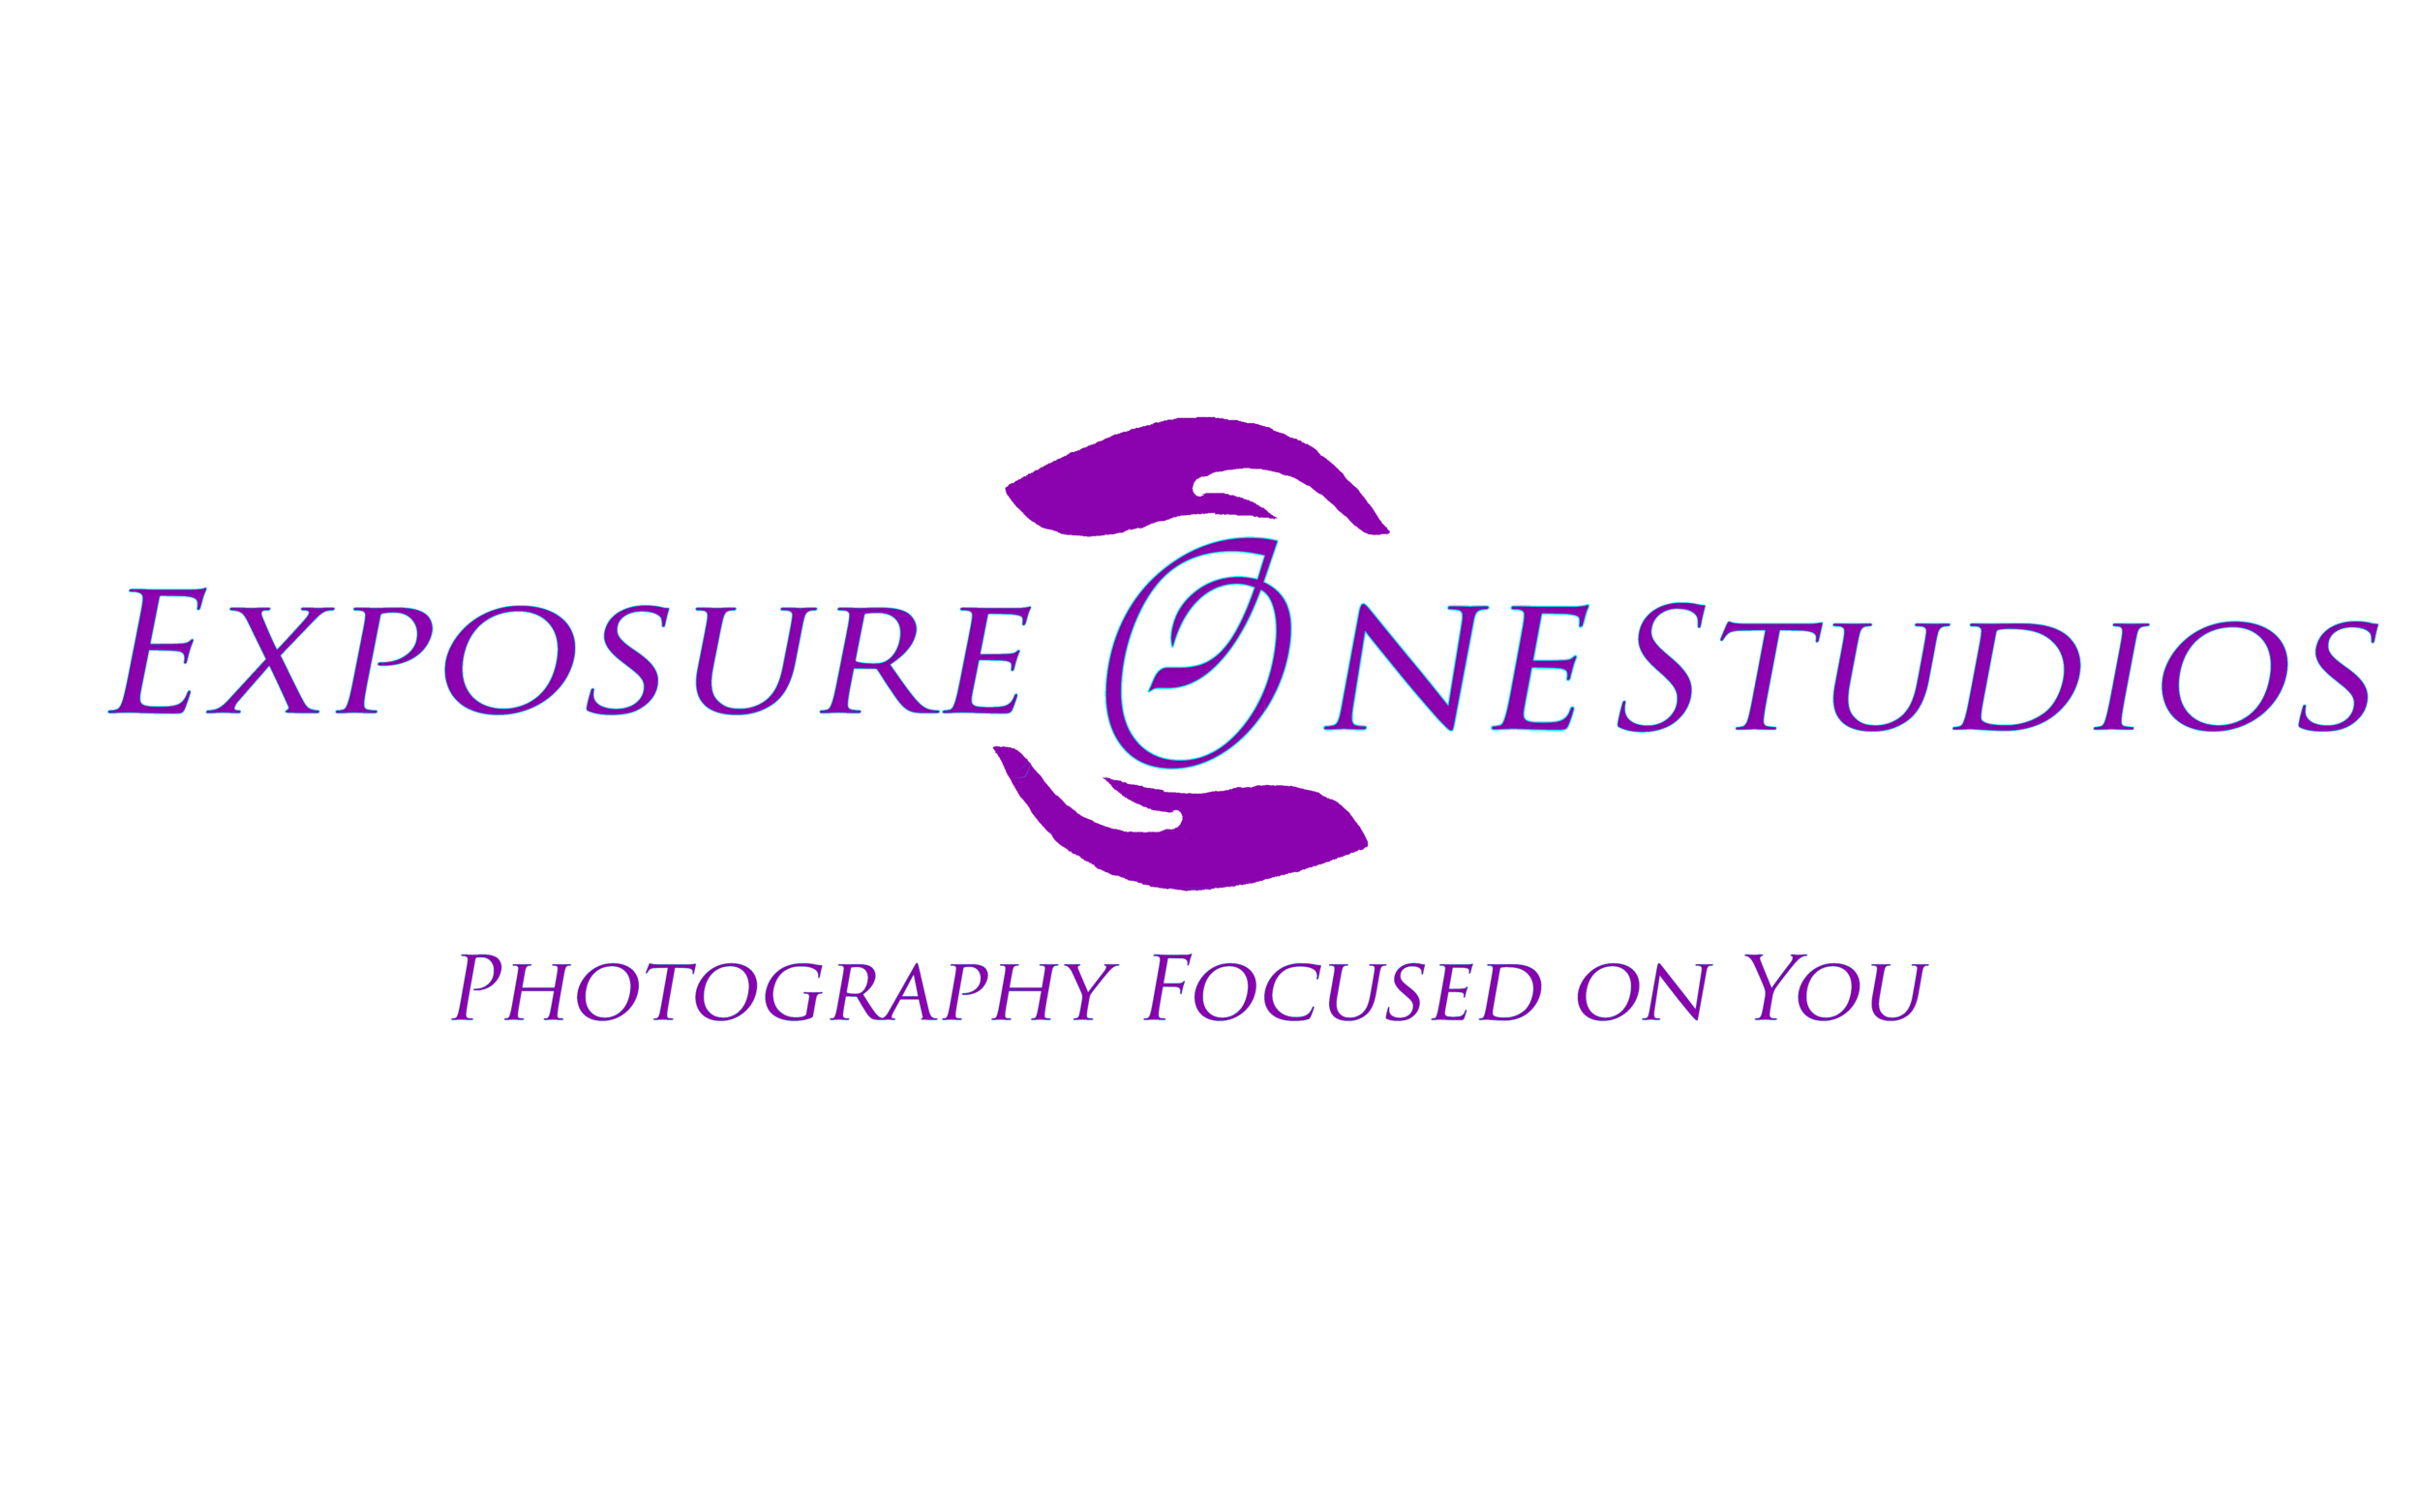 And last but not least the new official logo of my renamed photographic venture.